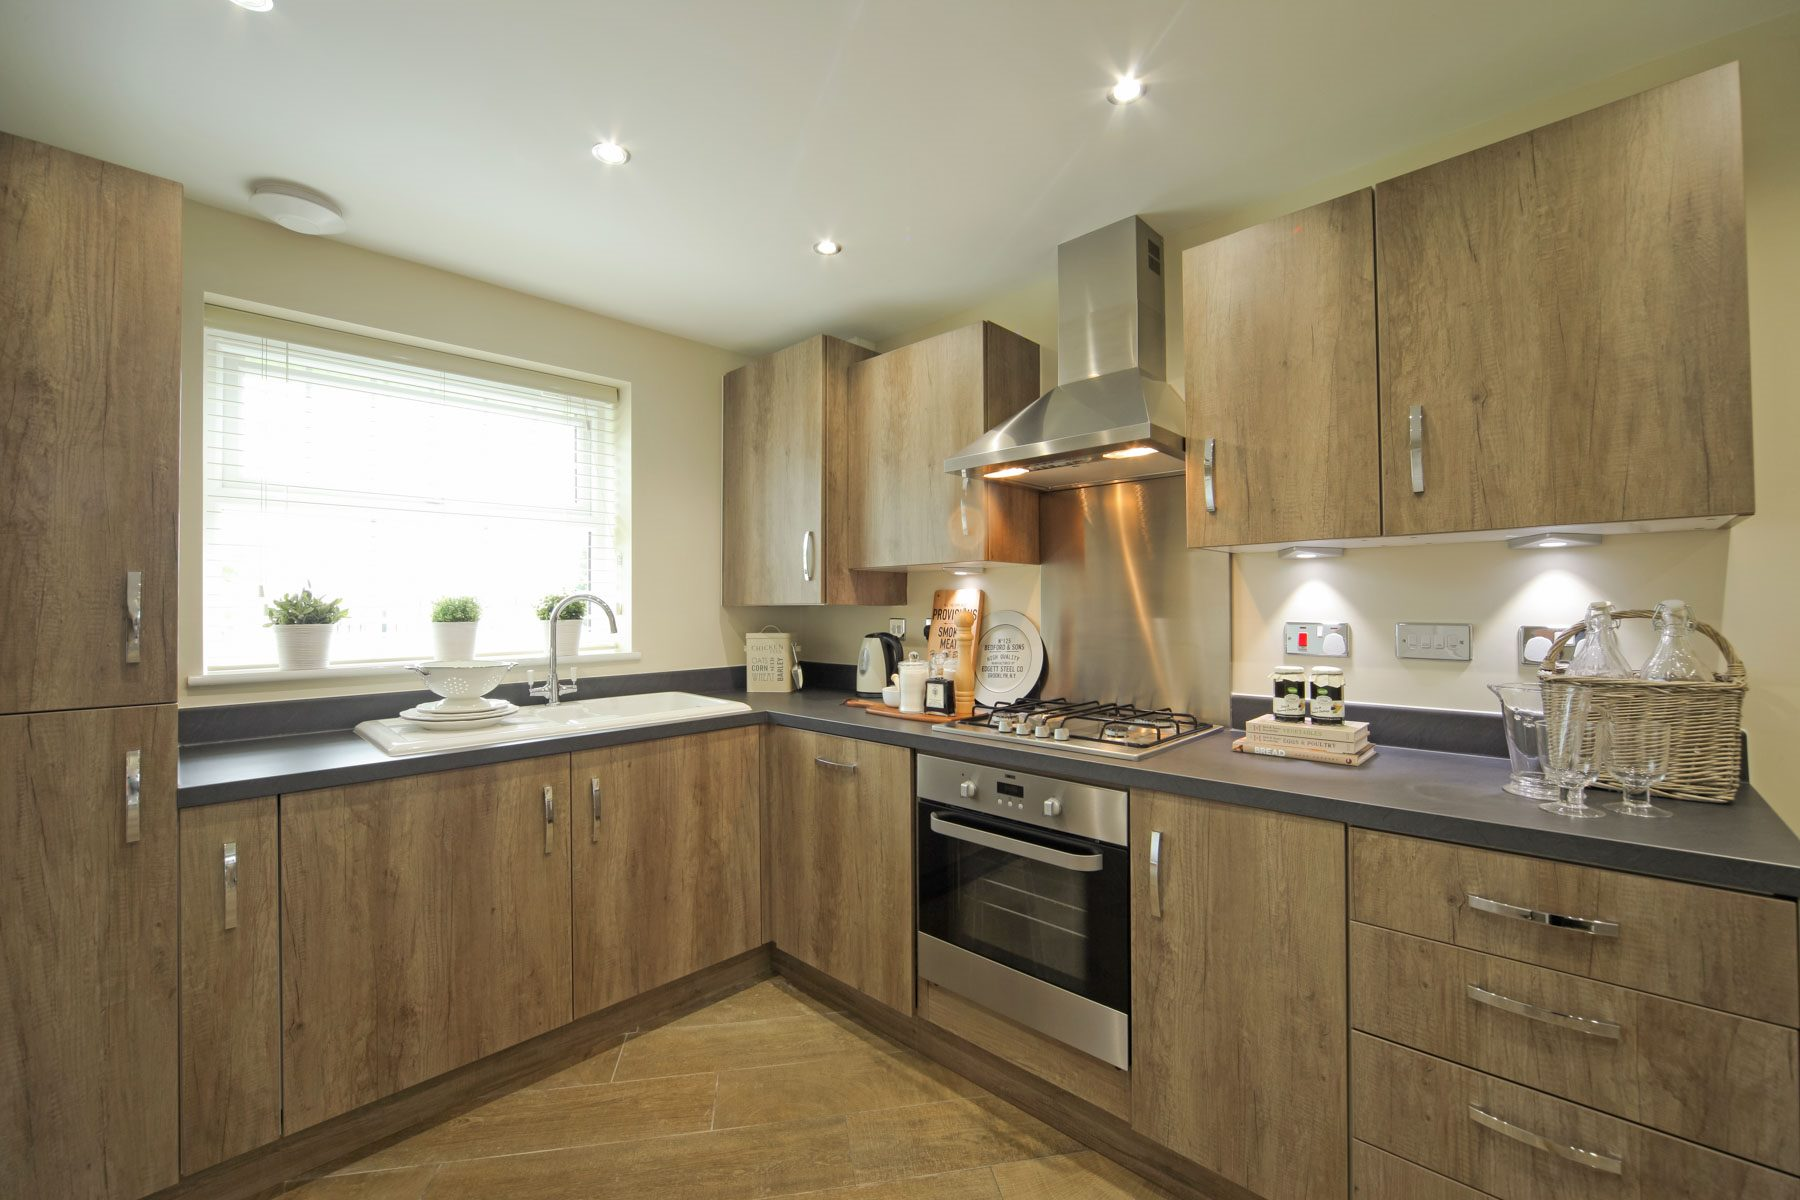 The alton g at bramley wood taylor wimpey for Perfect kitchen bramley